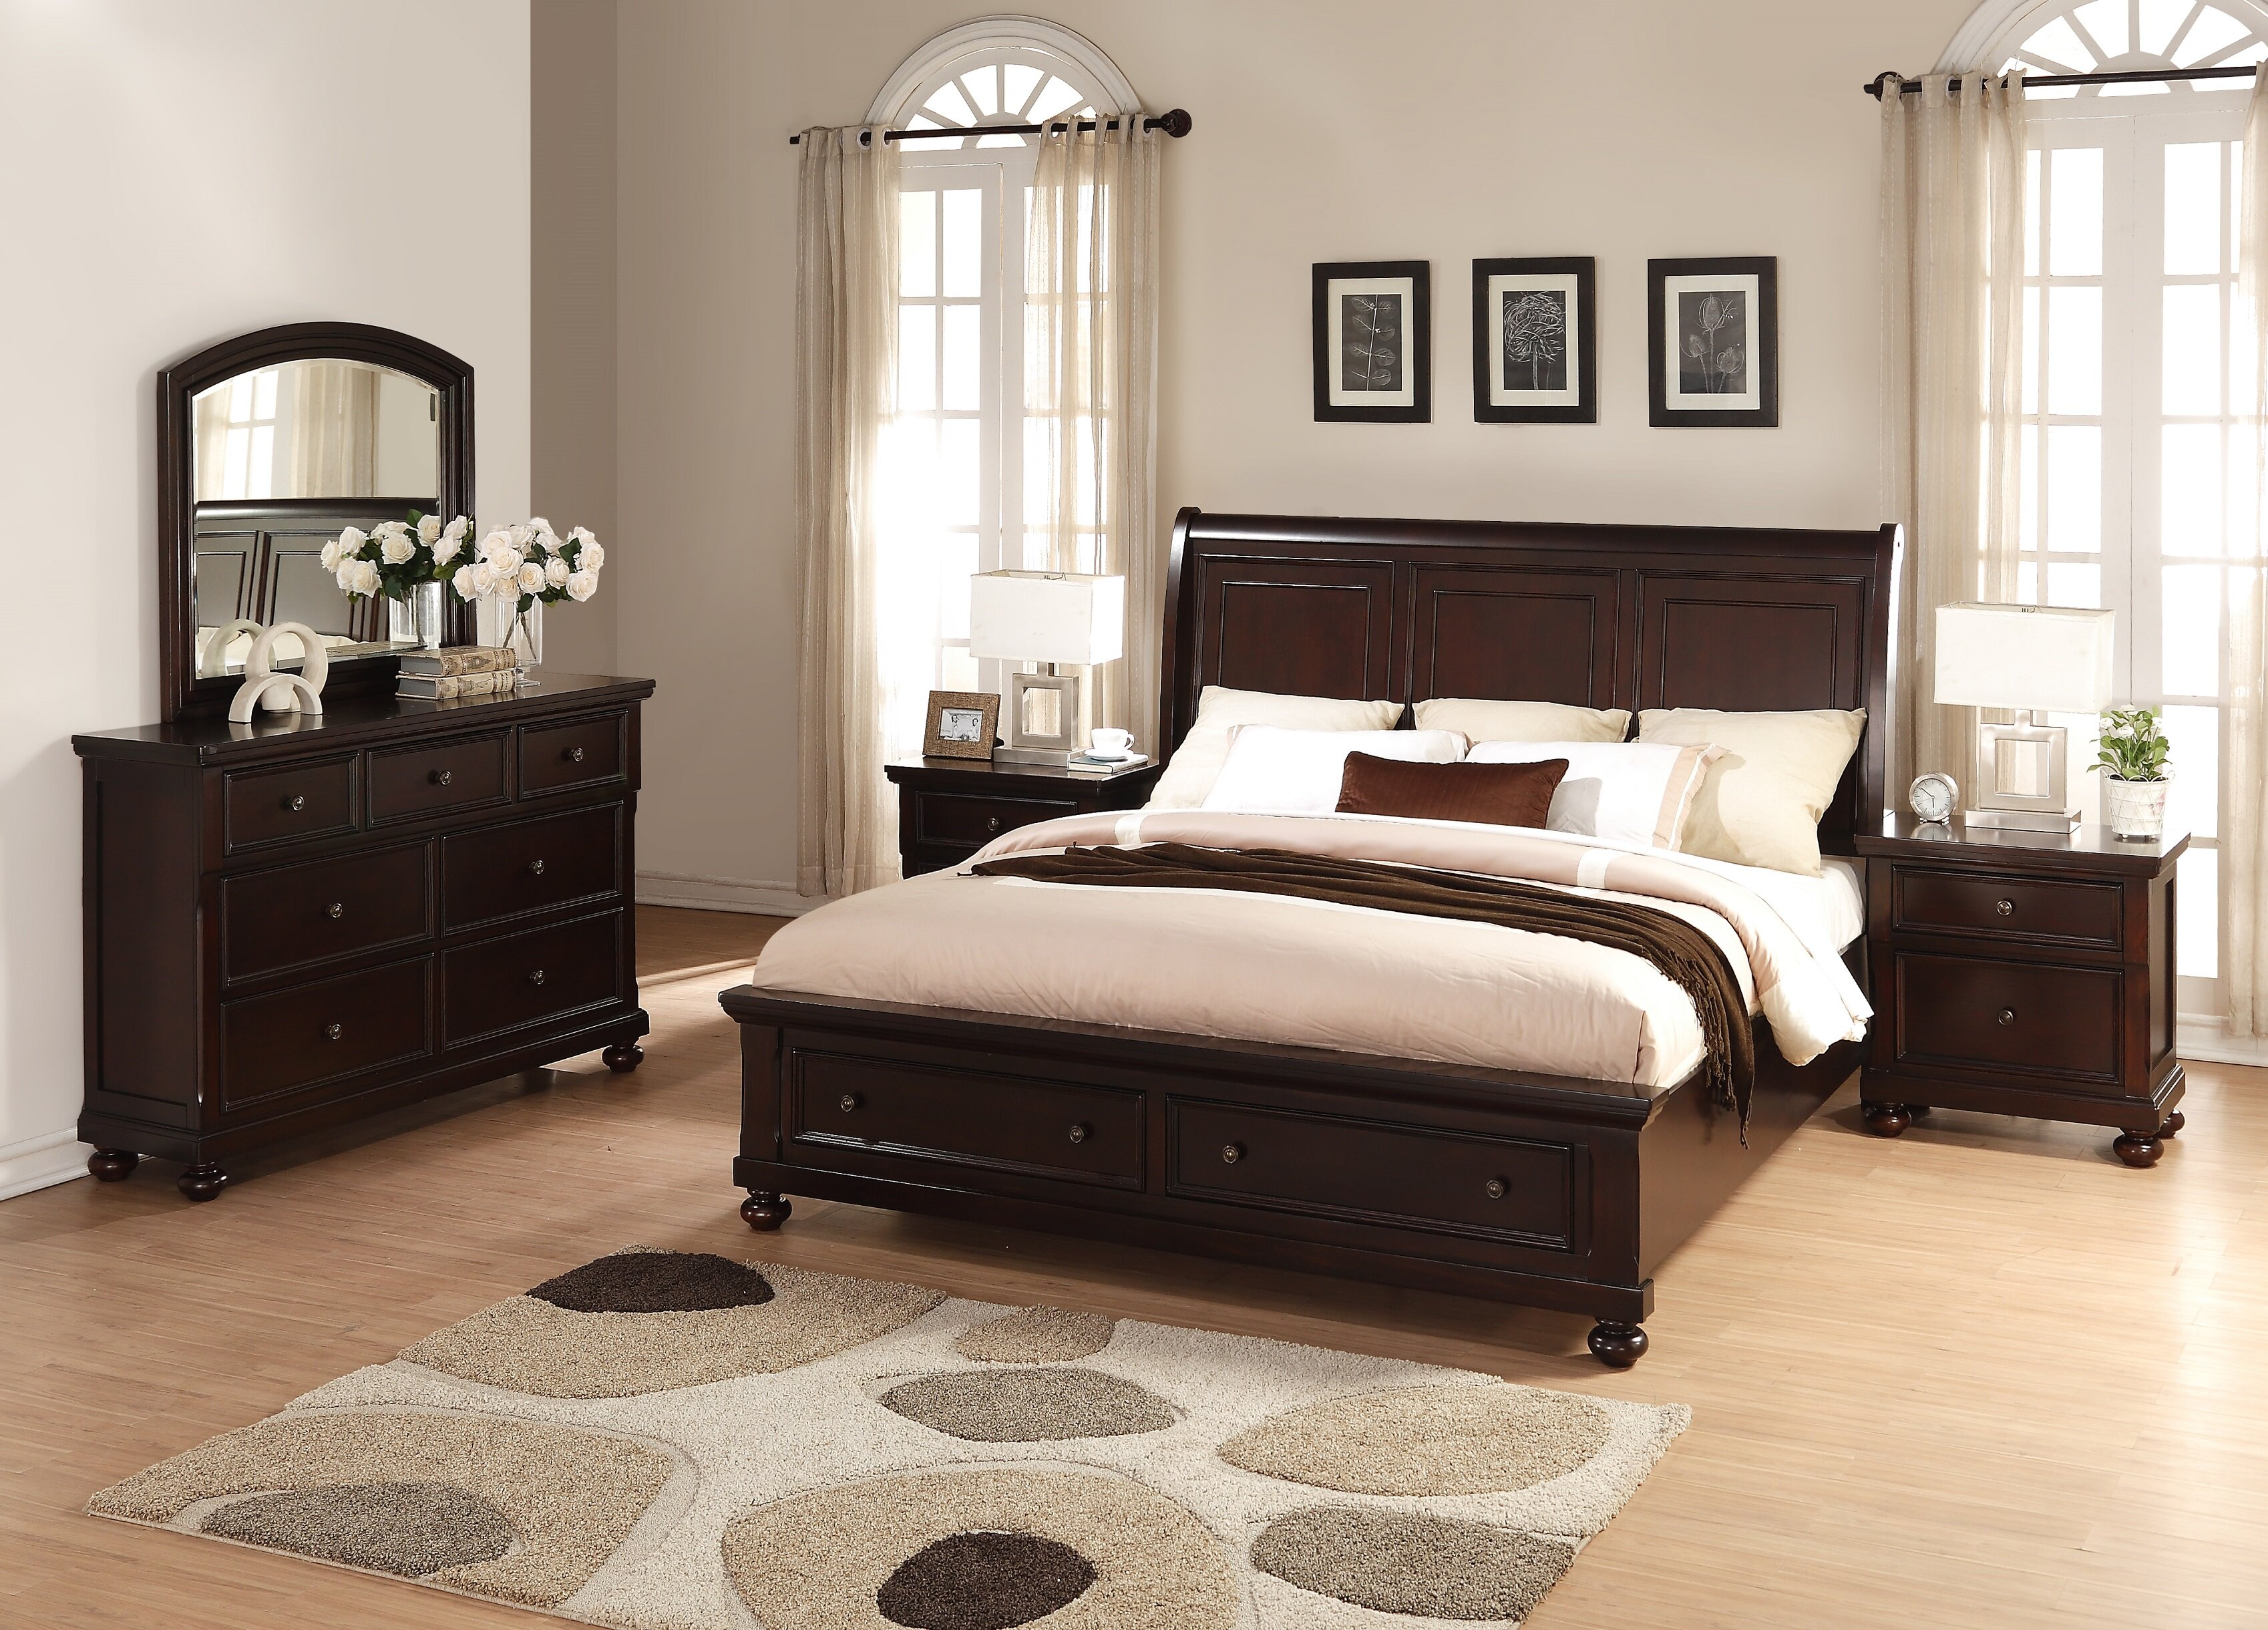 Perfect Roundhill Furniture Brishland King Platform 5 Piece Bedroom Set | Wayfair